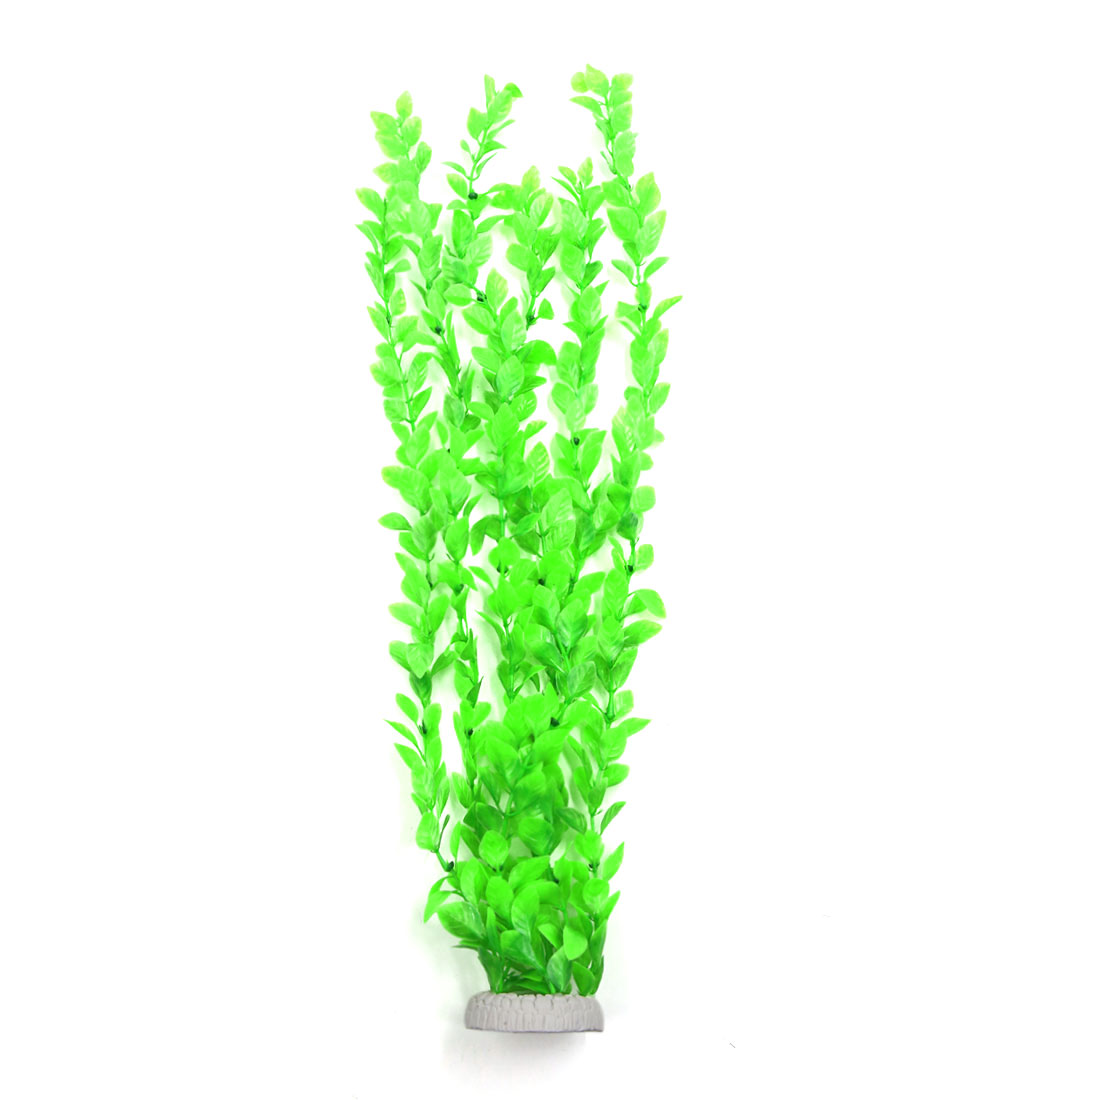 51cm Length Plastic Water Plant Grass Aquarium Fish Tank Decor Green